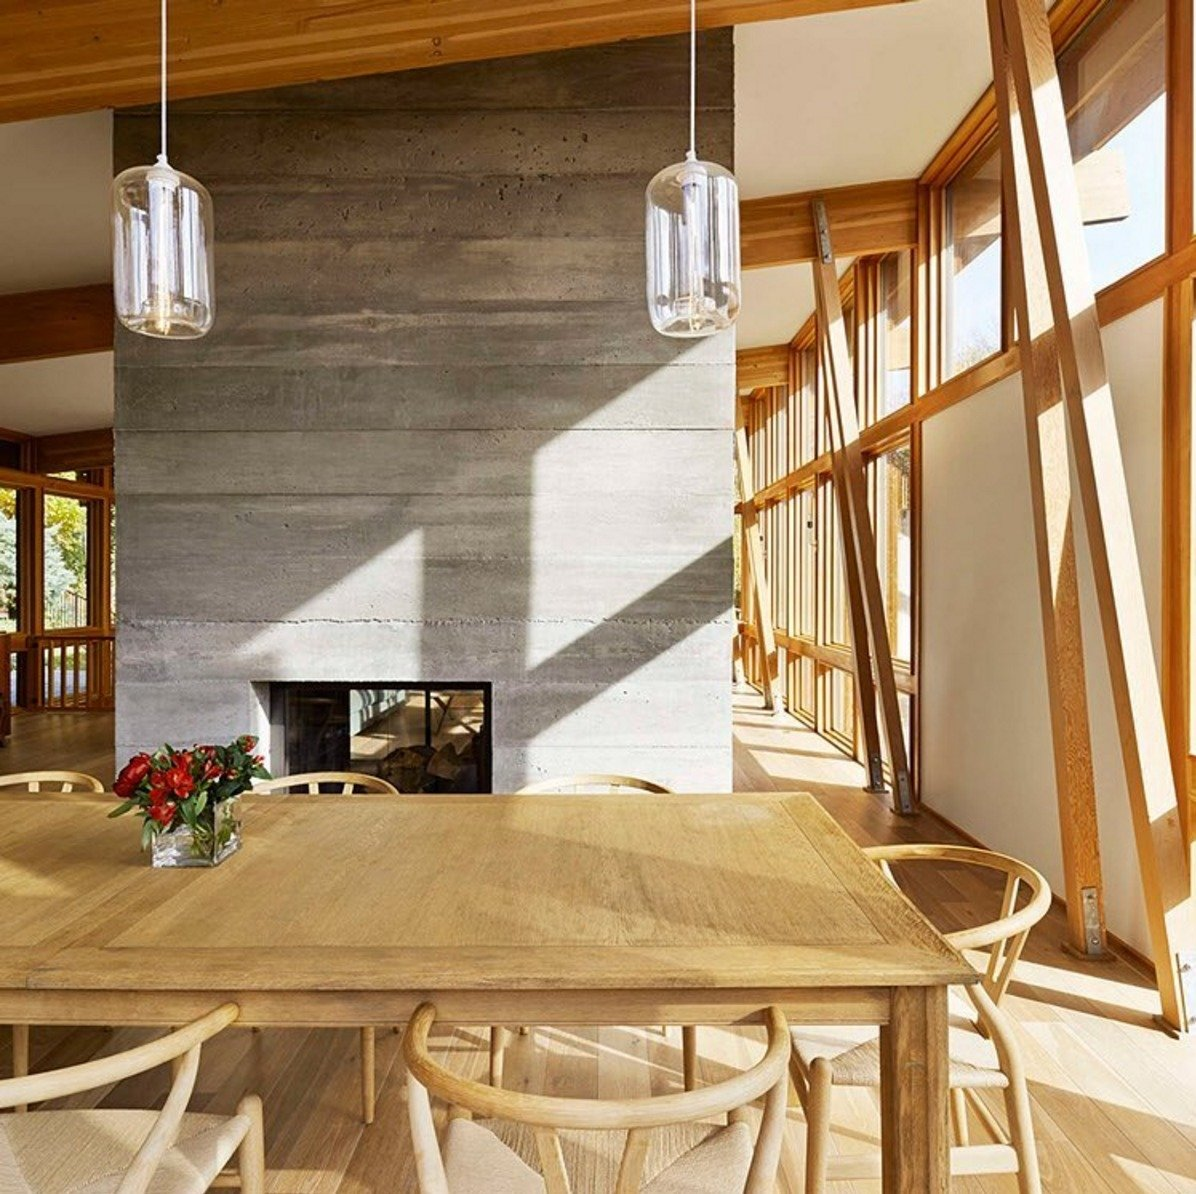 Take a peek at 3 #kitchen #table #pendant #lighting installations that embrace #midcentury #modern. Featured interior designed by Ole Sondresen.  60+ Modern Lighting Solutions by Dwell